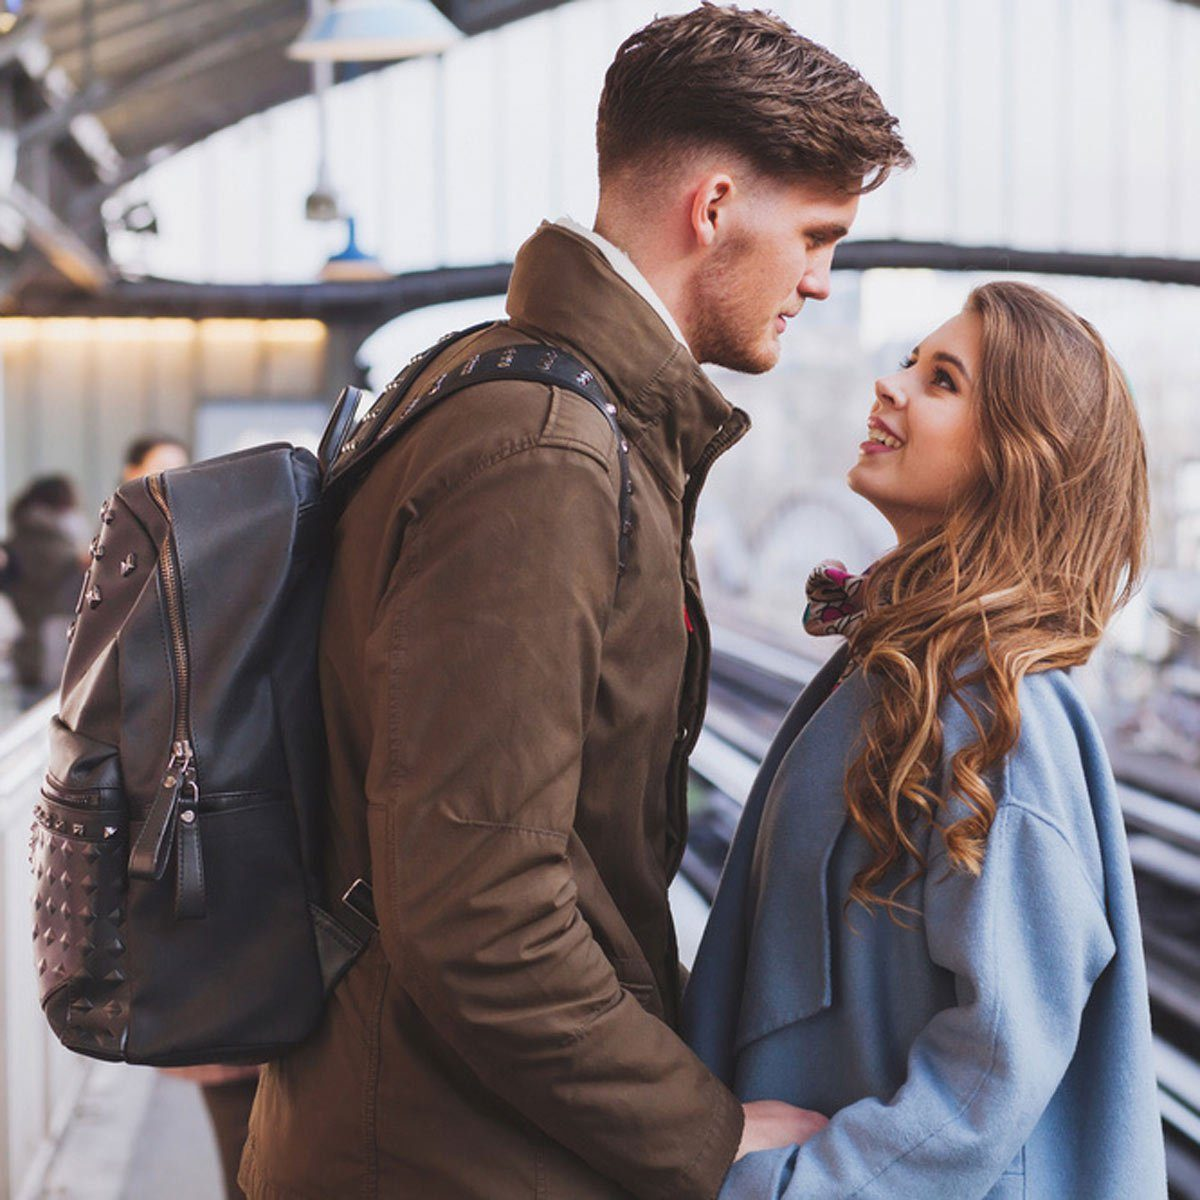 young couple looking at each other travel